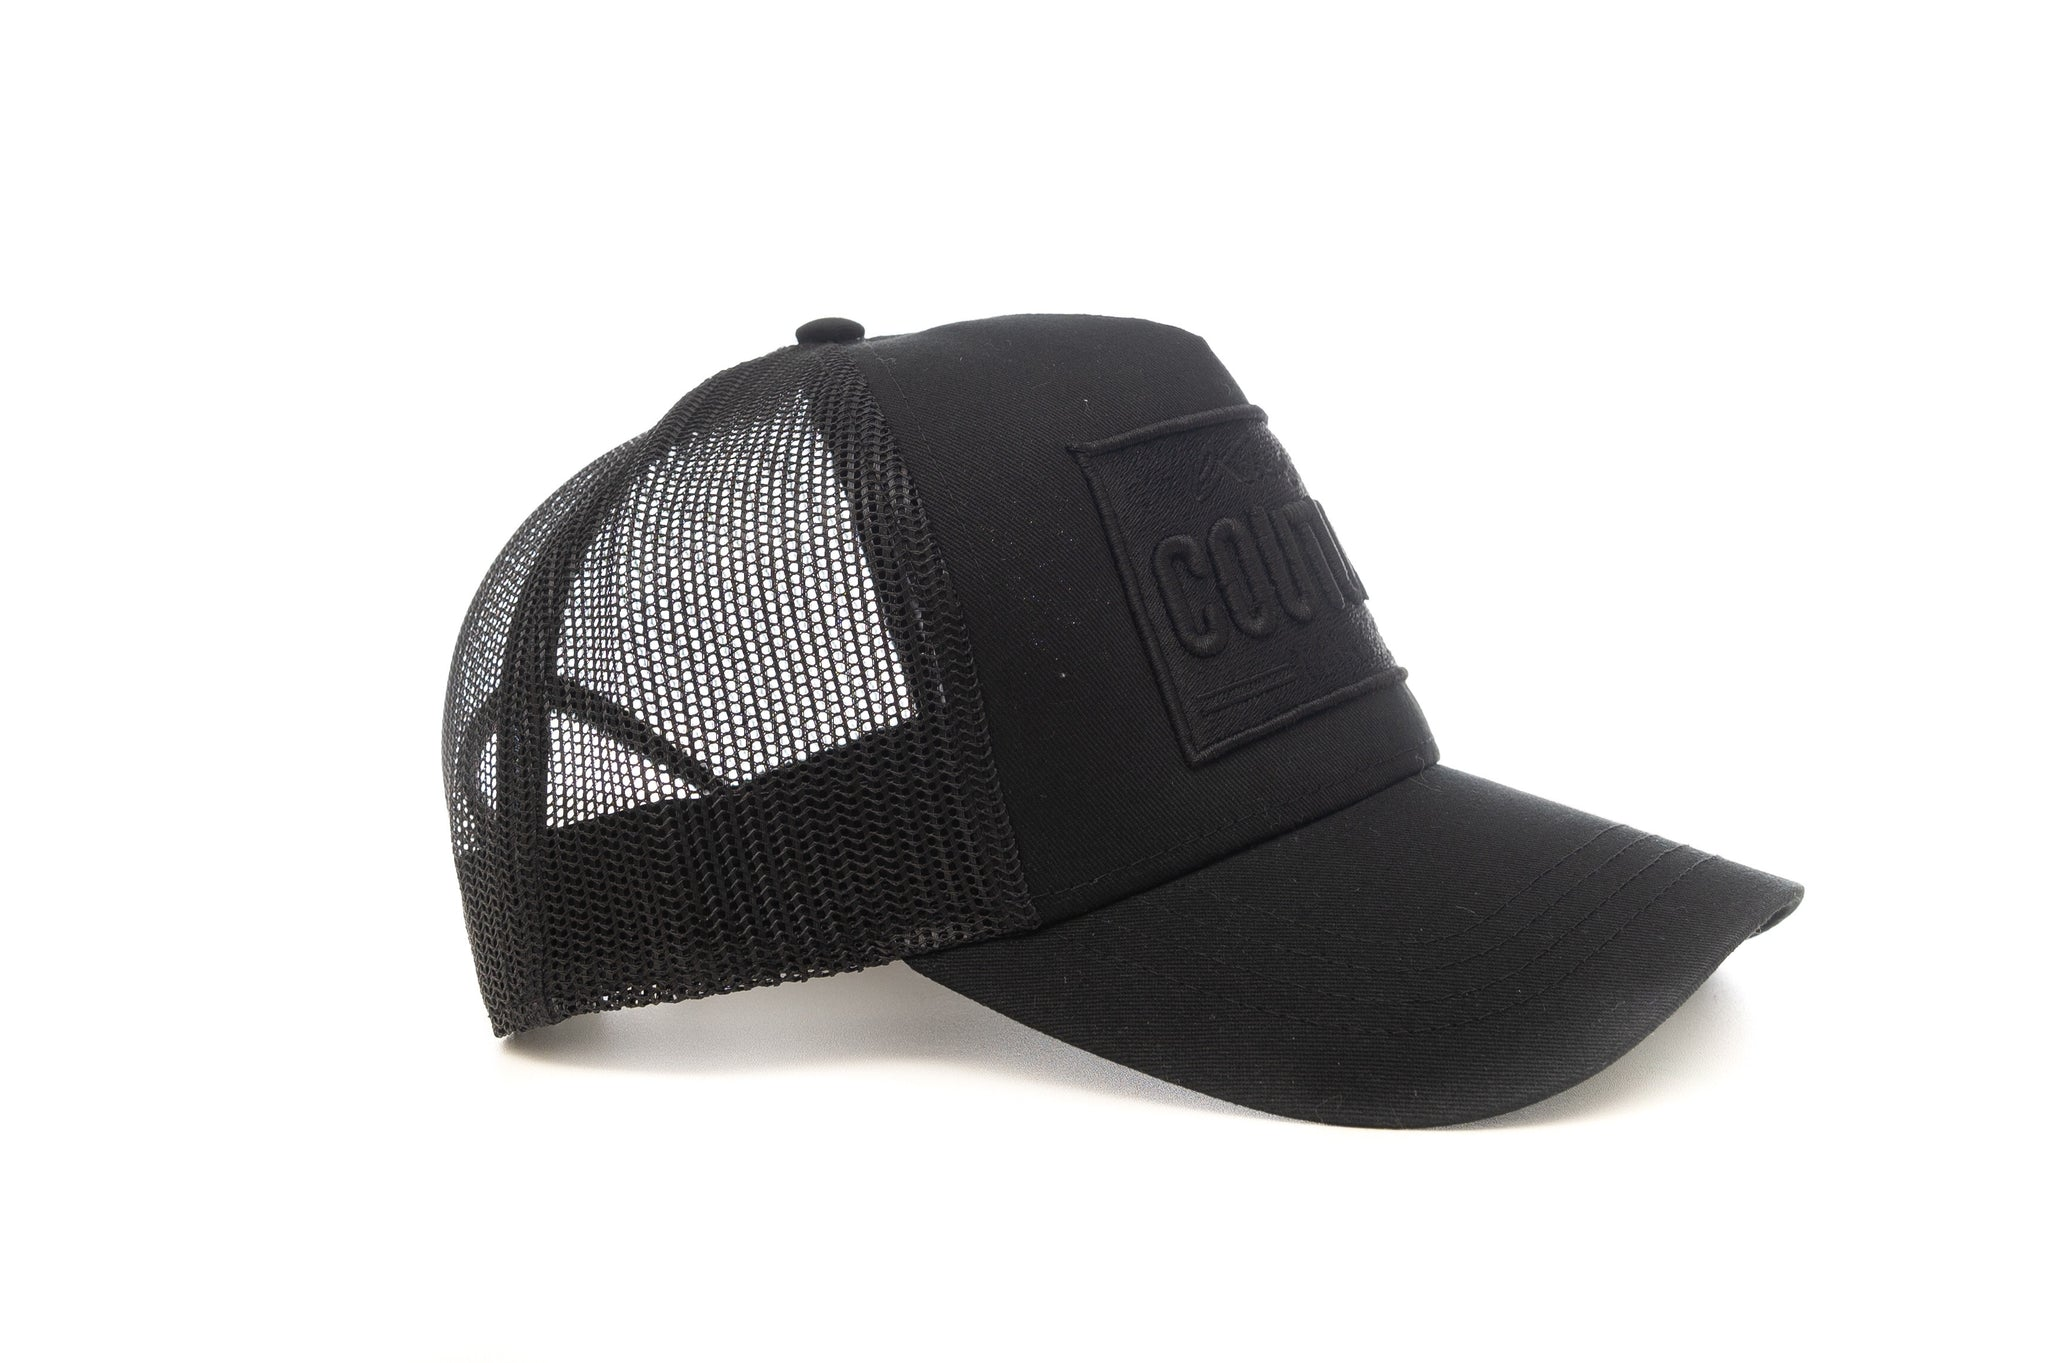 TRIPPLE BLACK LIMITED EDITION ICON PLATE MESH TRUCKER